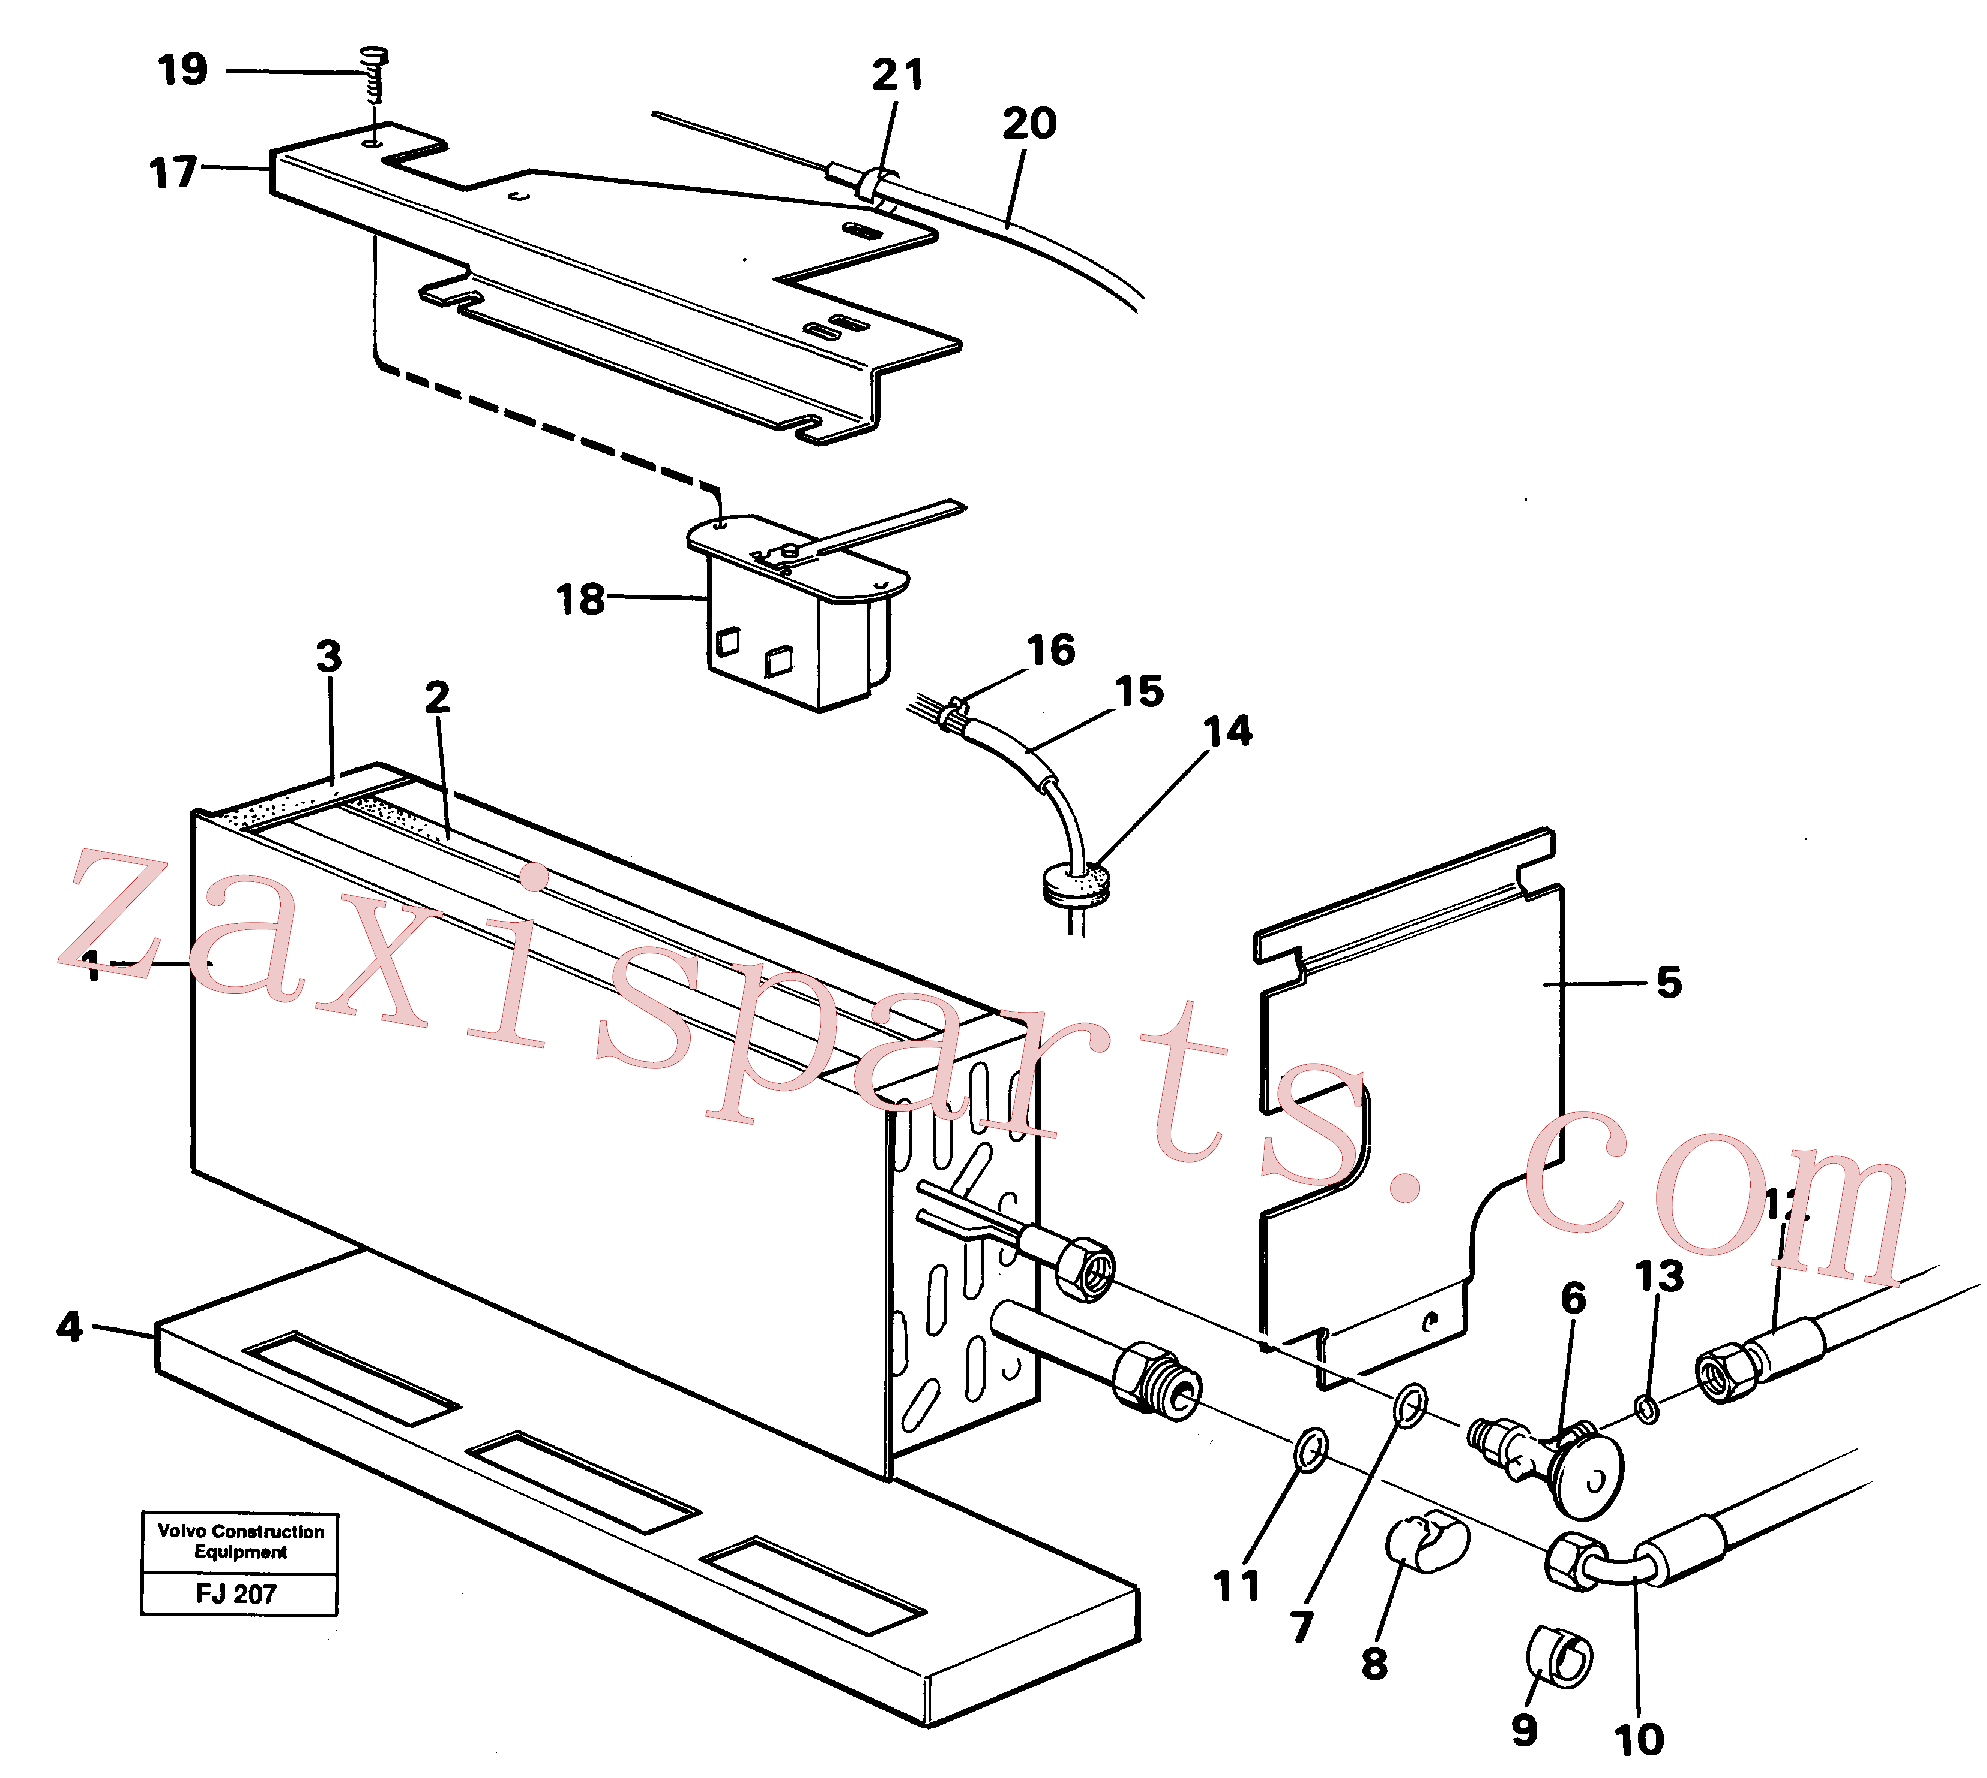 VOE14213543 for Volvo Evaporator with fitting parts Cooling agent R12,r134a(FJ207 assembly)